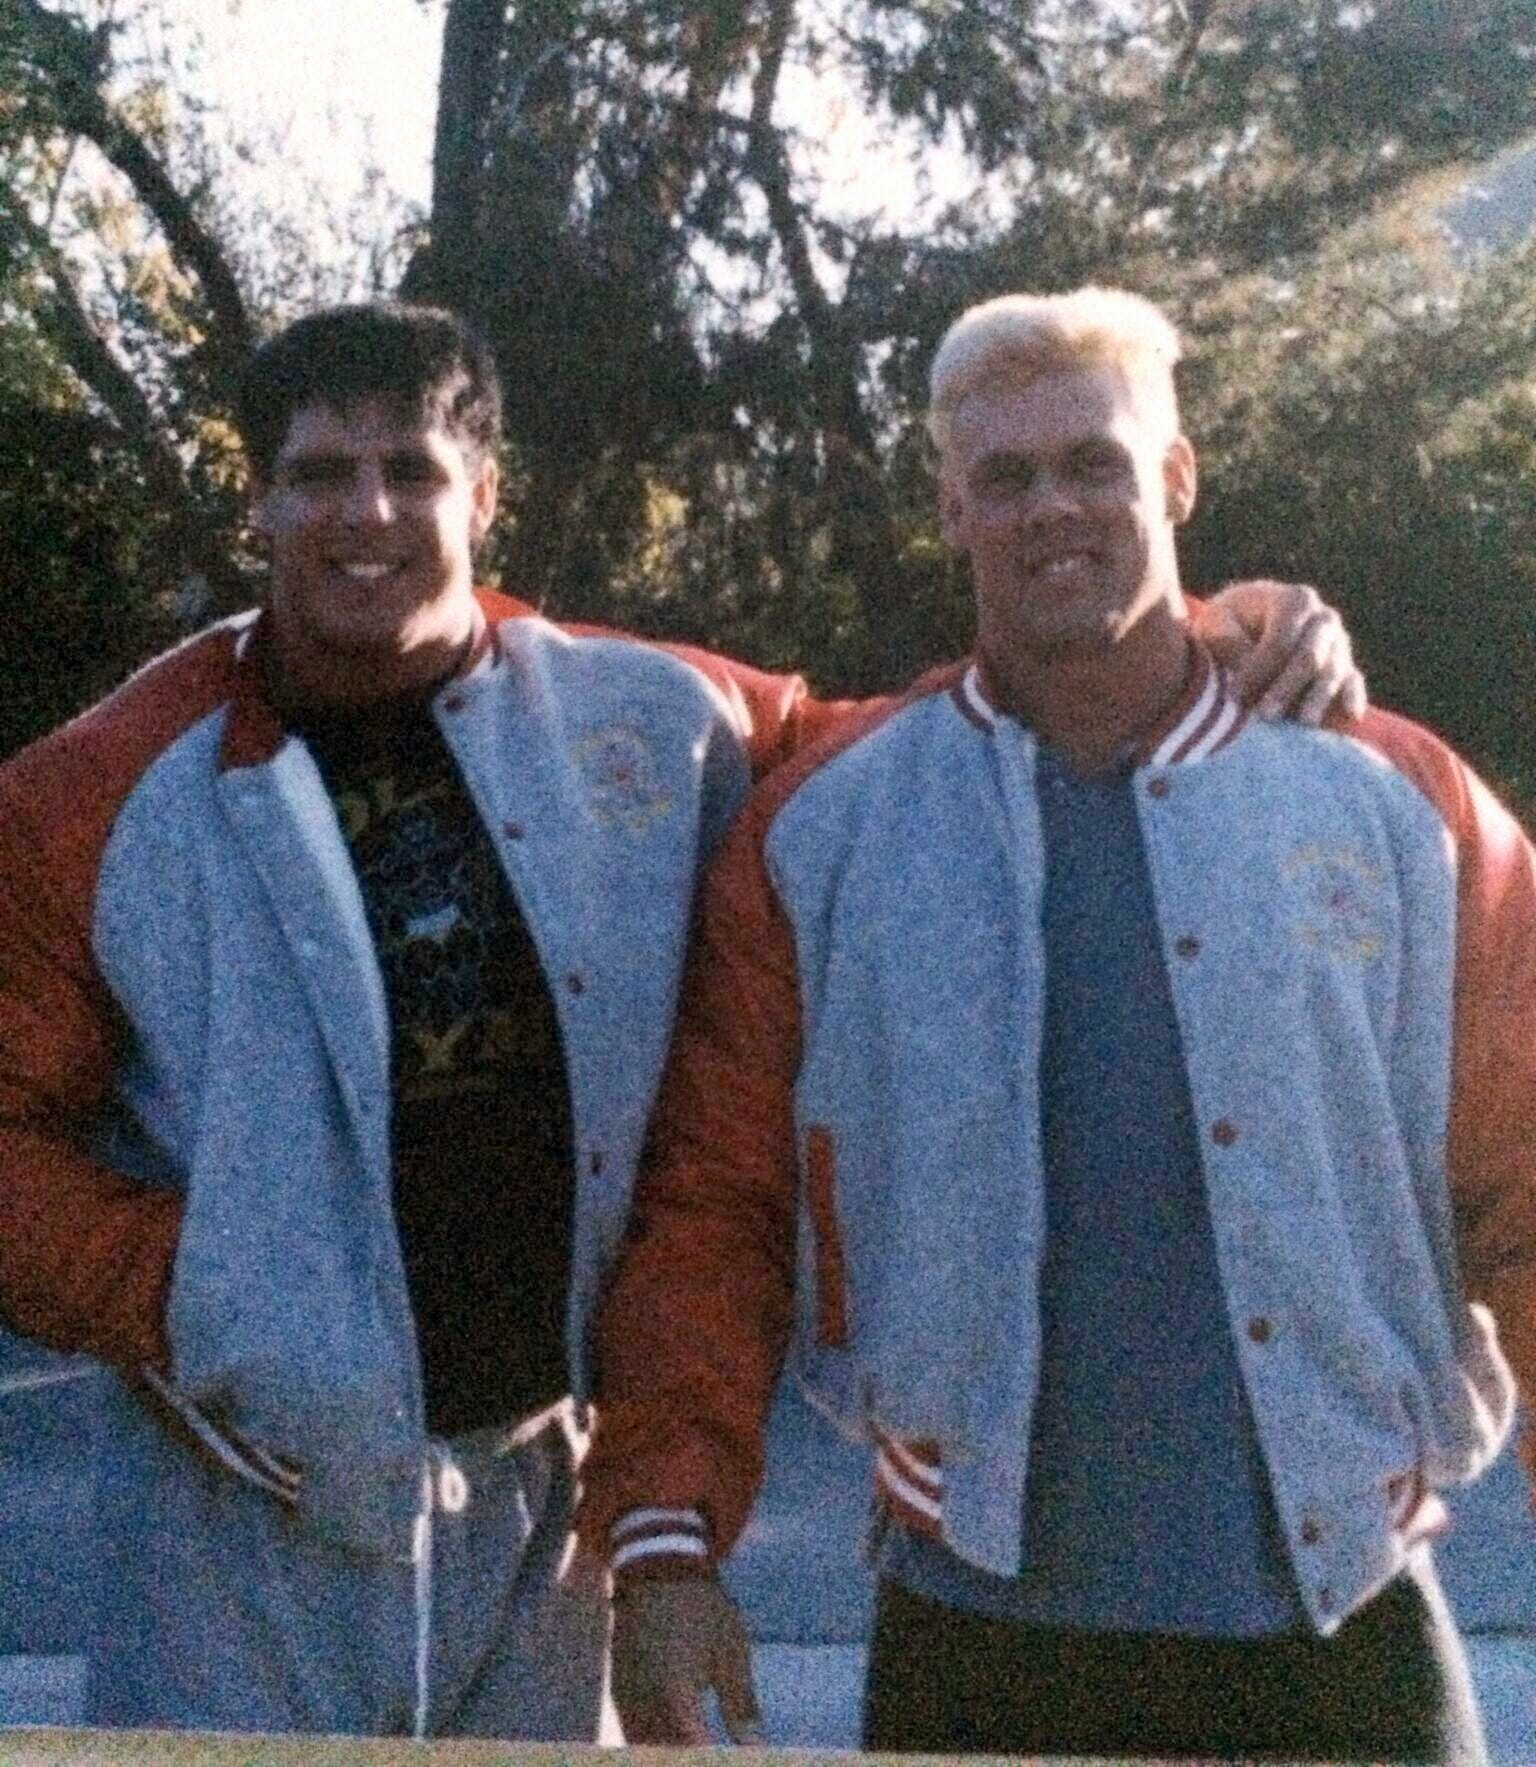 Jim Hellwig and Steve Borden (Ultimate Warrior and Sting), pictured here soon after they met in 1985, discuss paying their dues and what their relationship was like outside of the ring.